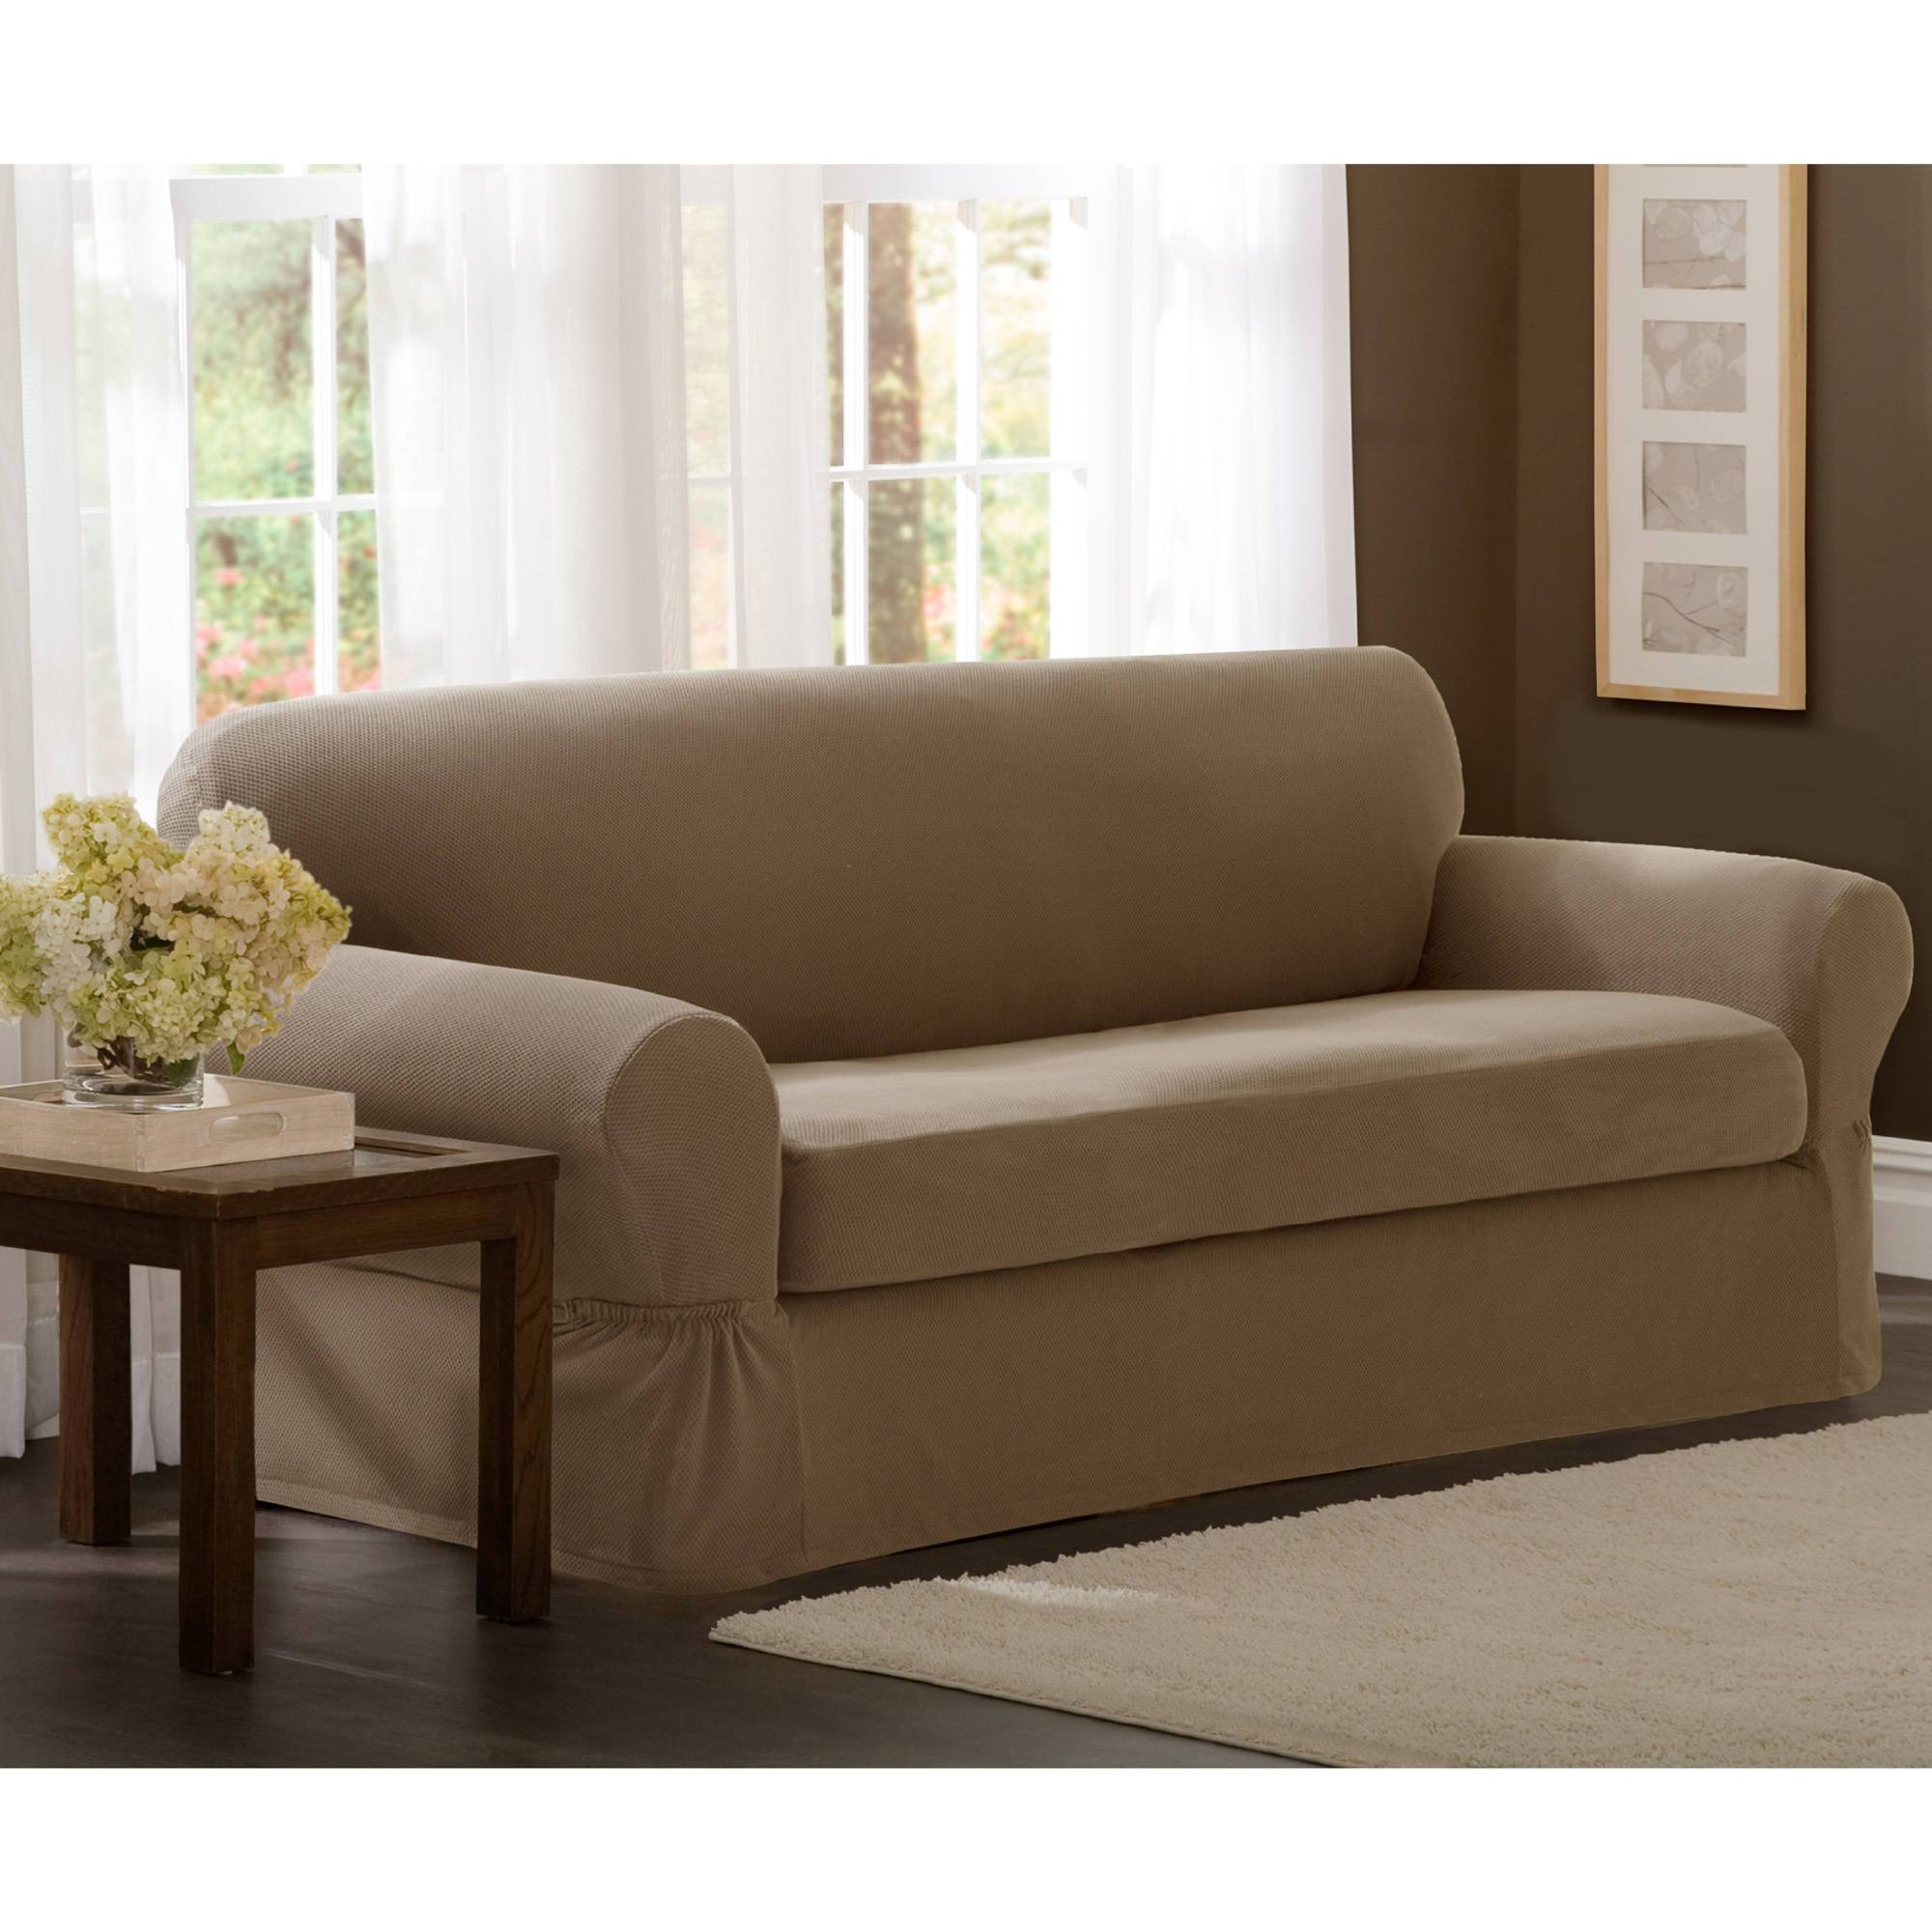 Maytex Stretch 2-Piece Sofa Slipcover - Walmart for Canvas Sofas Covers (Image 8 of 15)